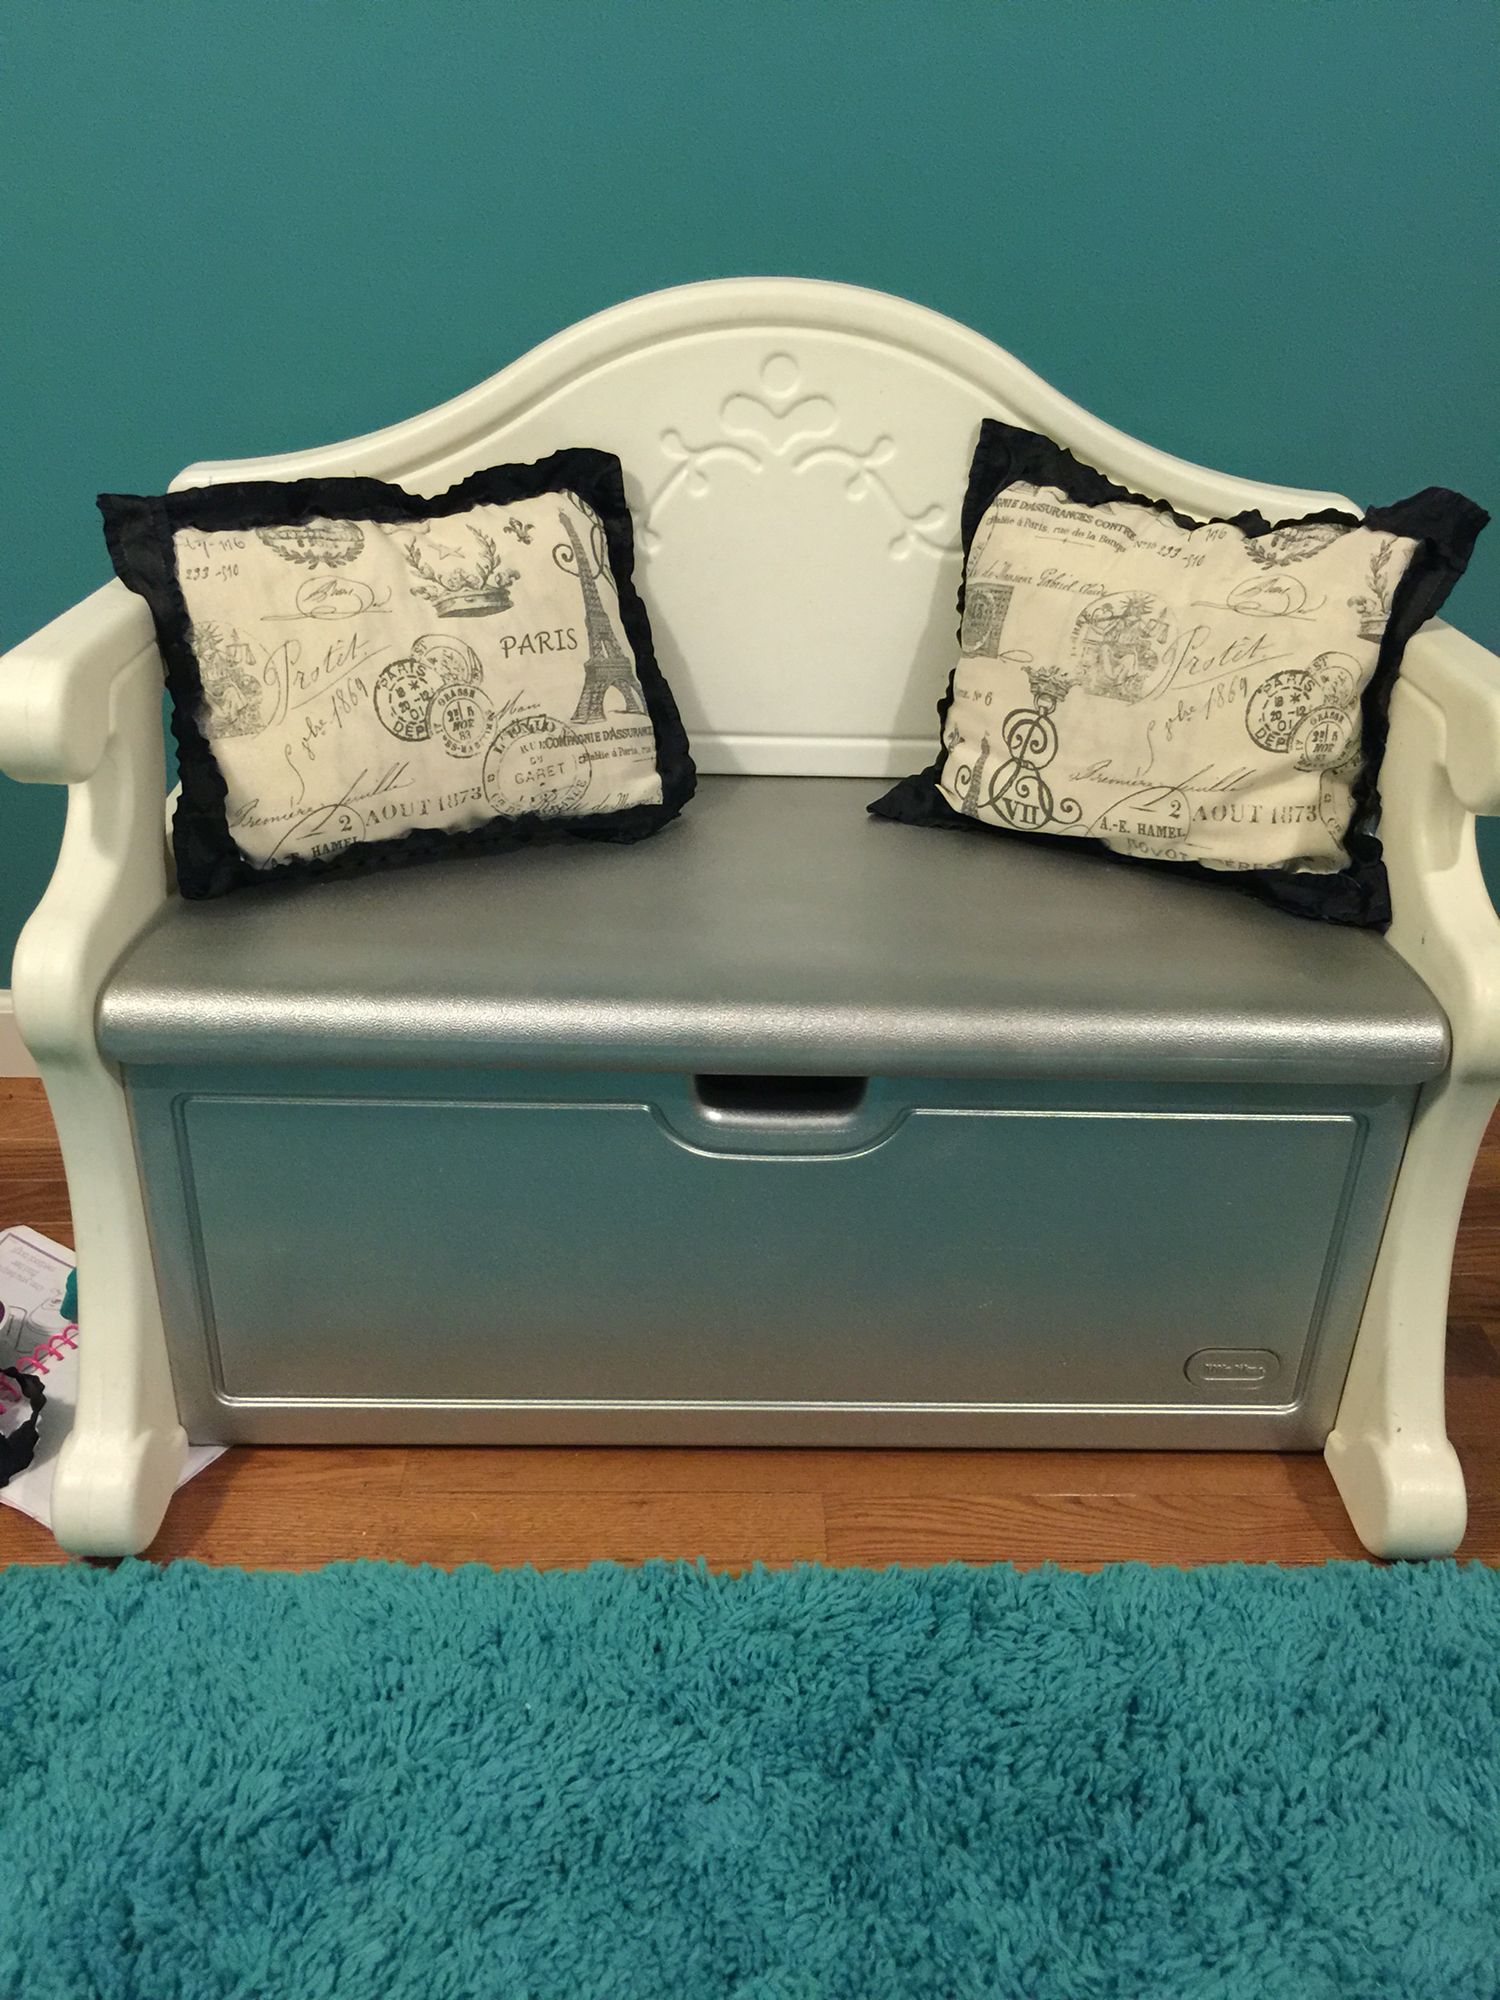 Magnificent Little Tikes Bench Makeover I Painted The Pink Parts Silver Ocoug Best Dining Table And Chair Ideas Images Ocougorg